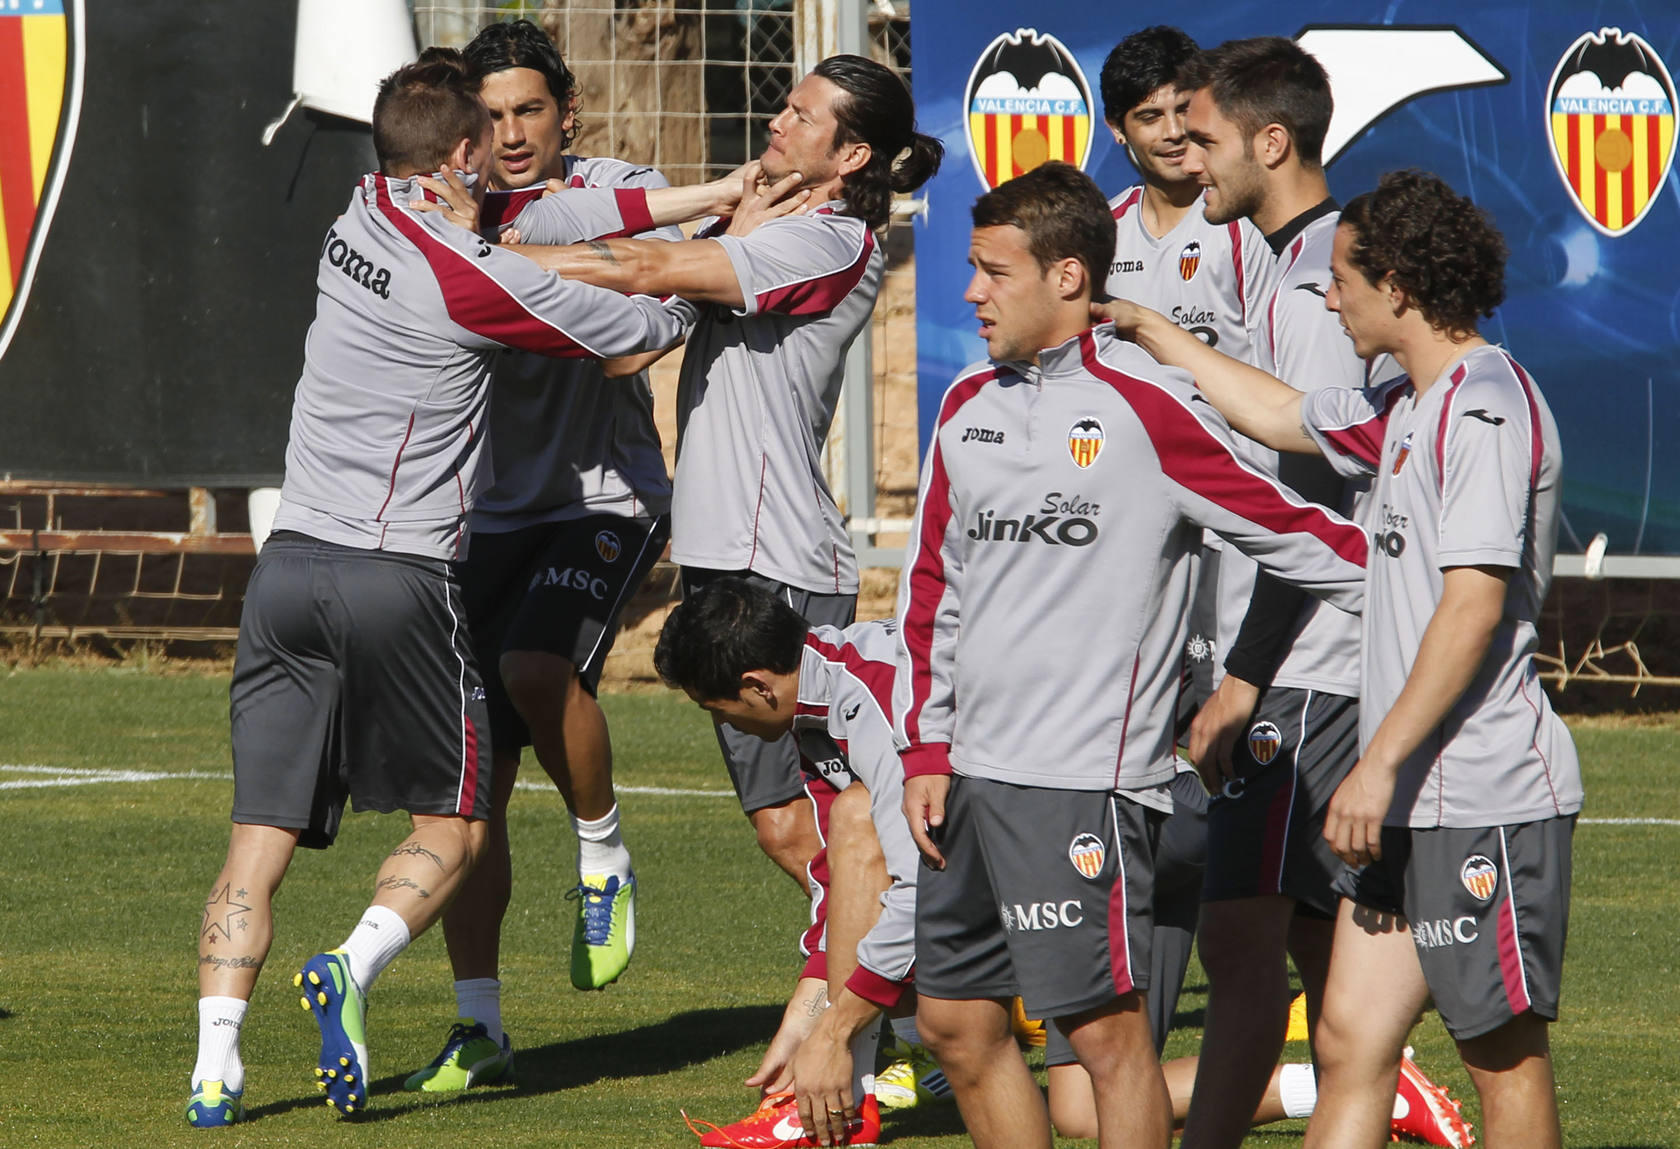 Entrenamiento del Valencia (3 de abril de 2013)